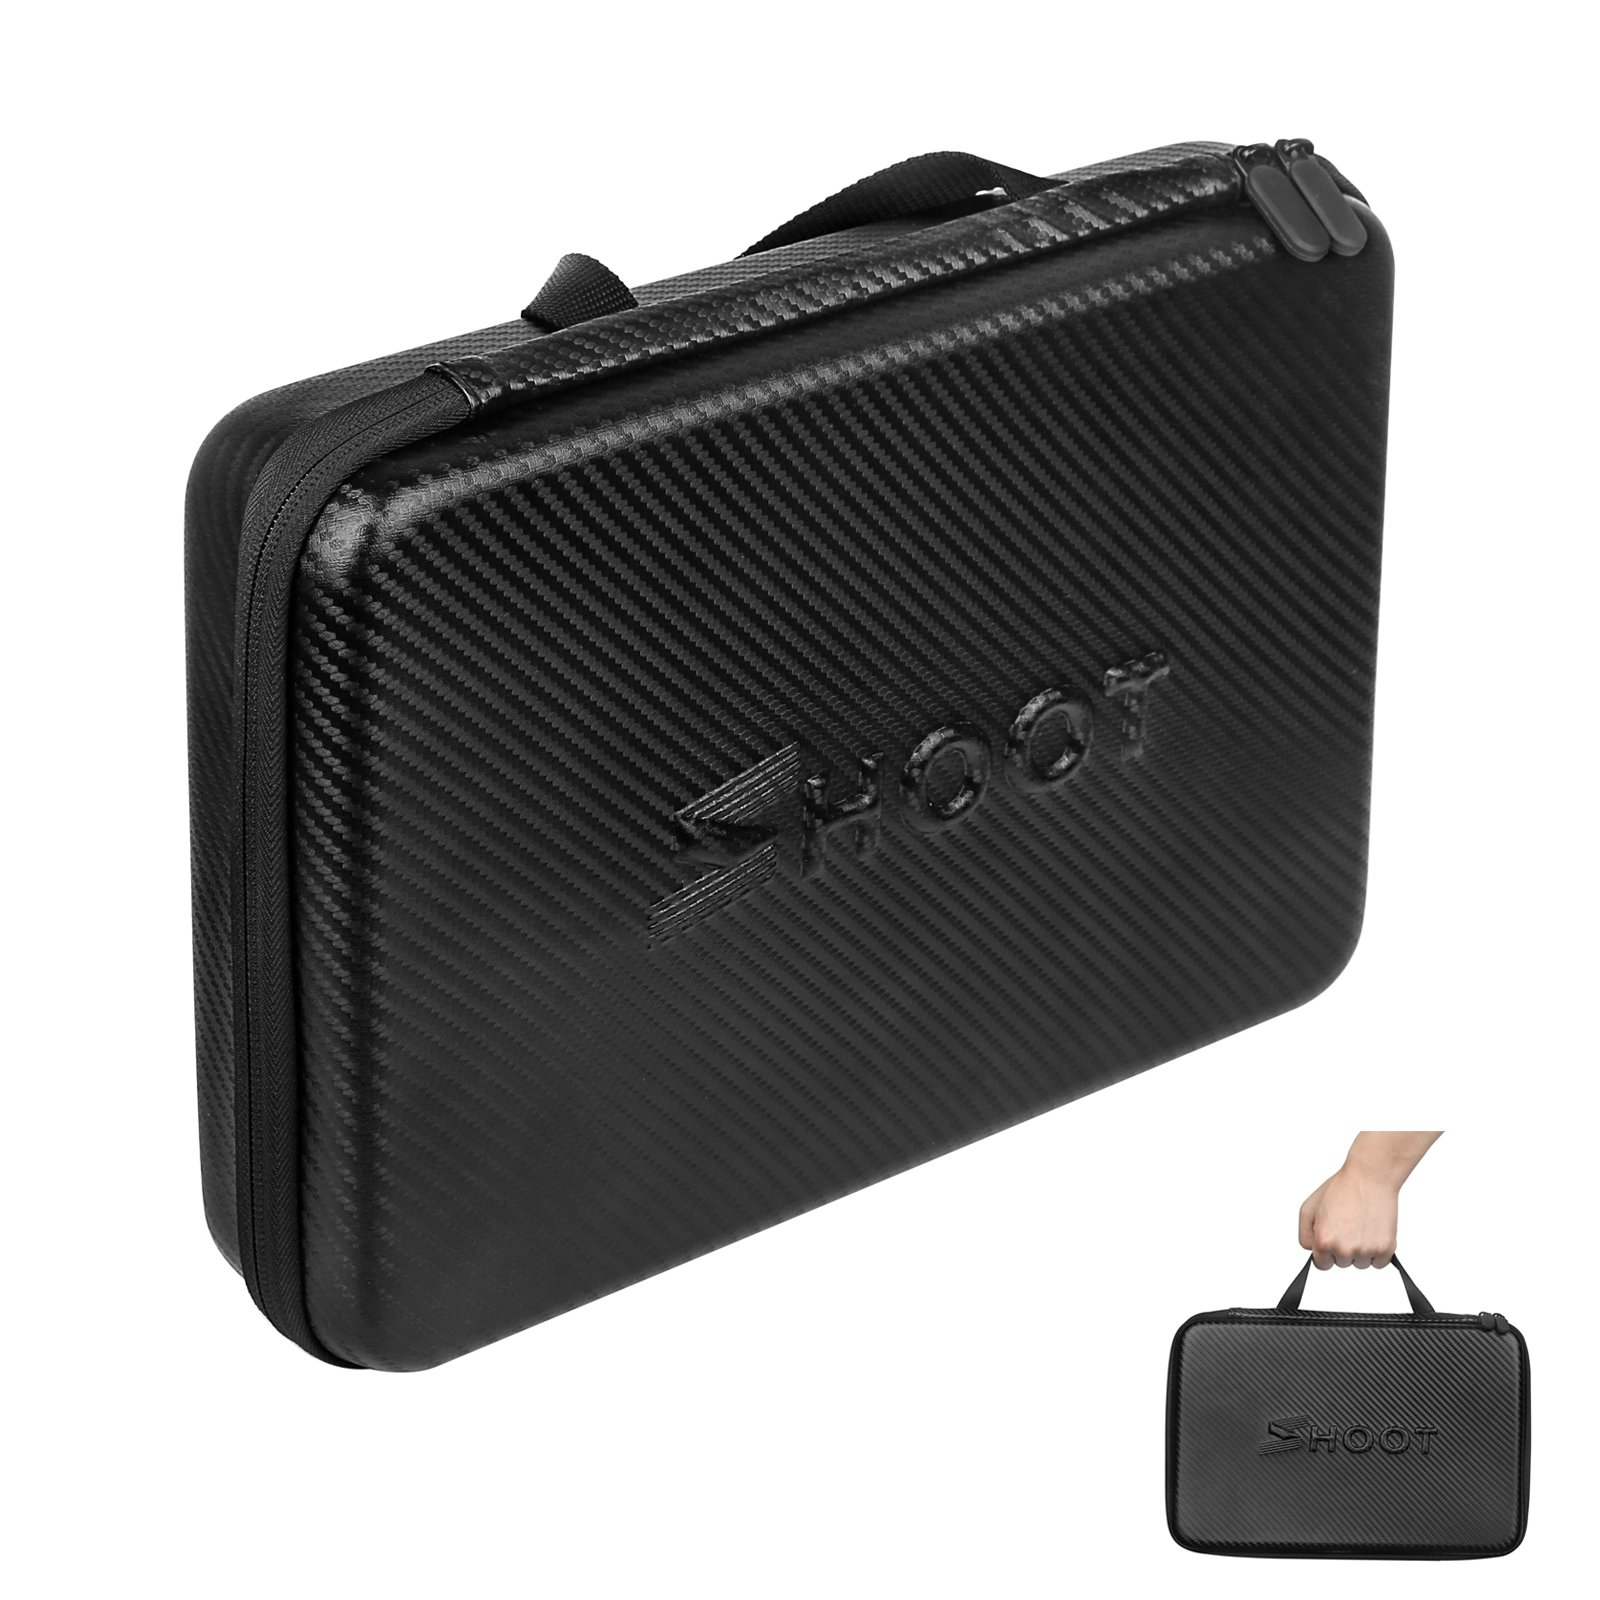 D&F PU Waterproof Carrying Case Storage Bag Protective Shockproof Box for GoPro HERO 6/5/4/3+/3 SJCAM Xiaomi Yi Sport Camera Accessories - Large